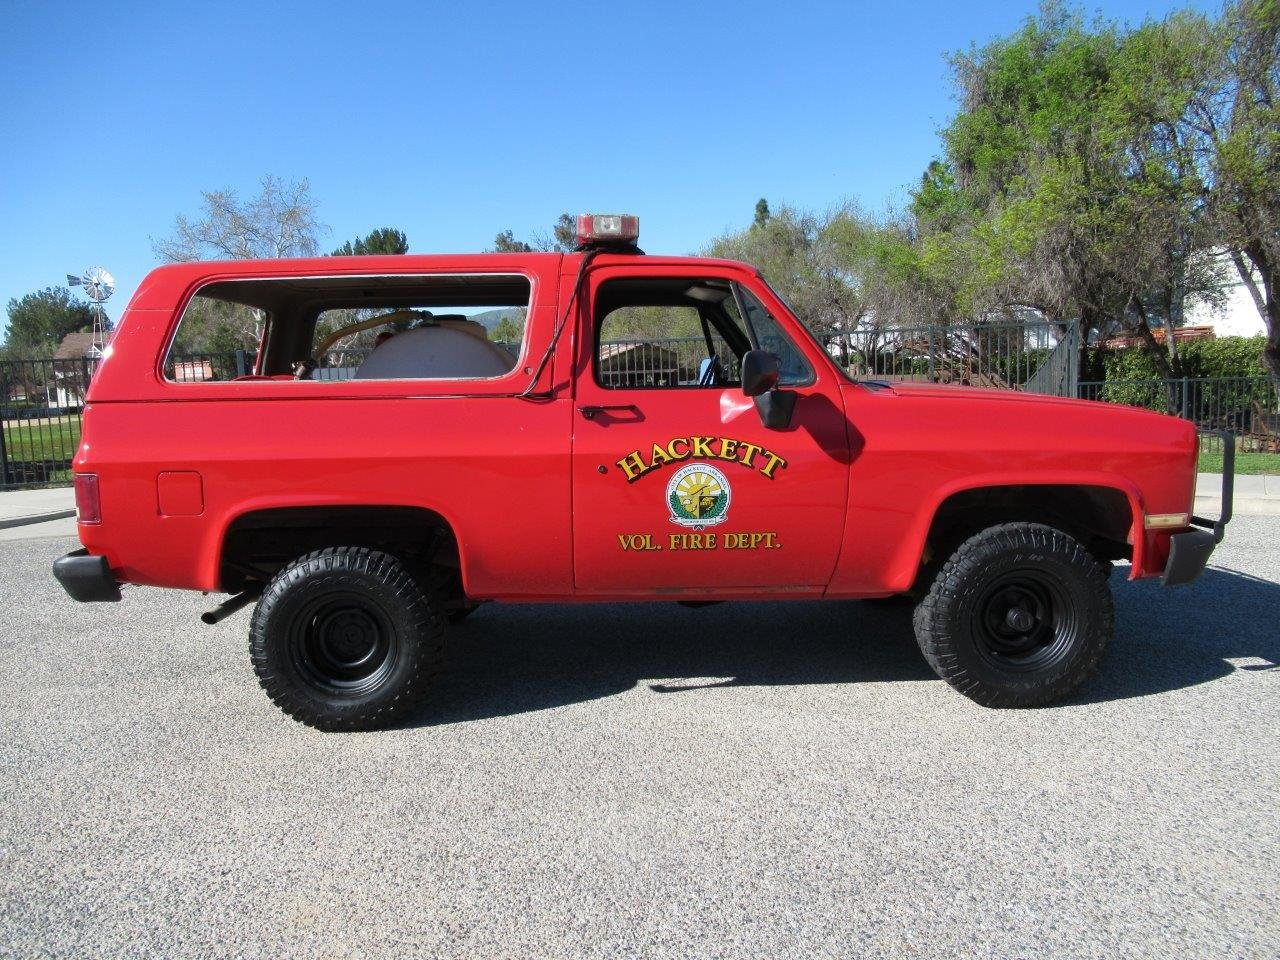 1985 Chevrolet Blazer D10/M1009 For Sale (picture 2 of 6)